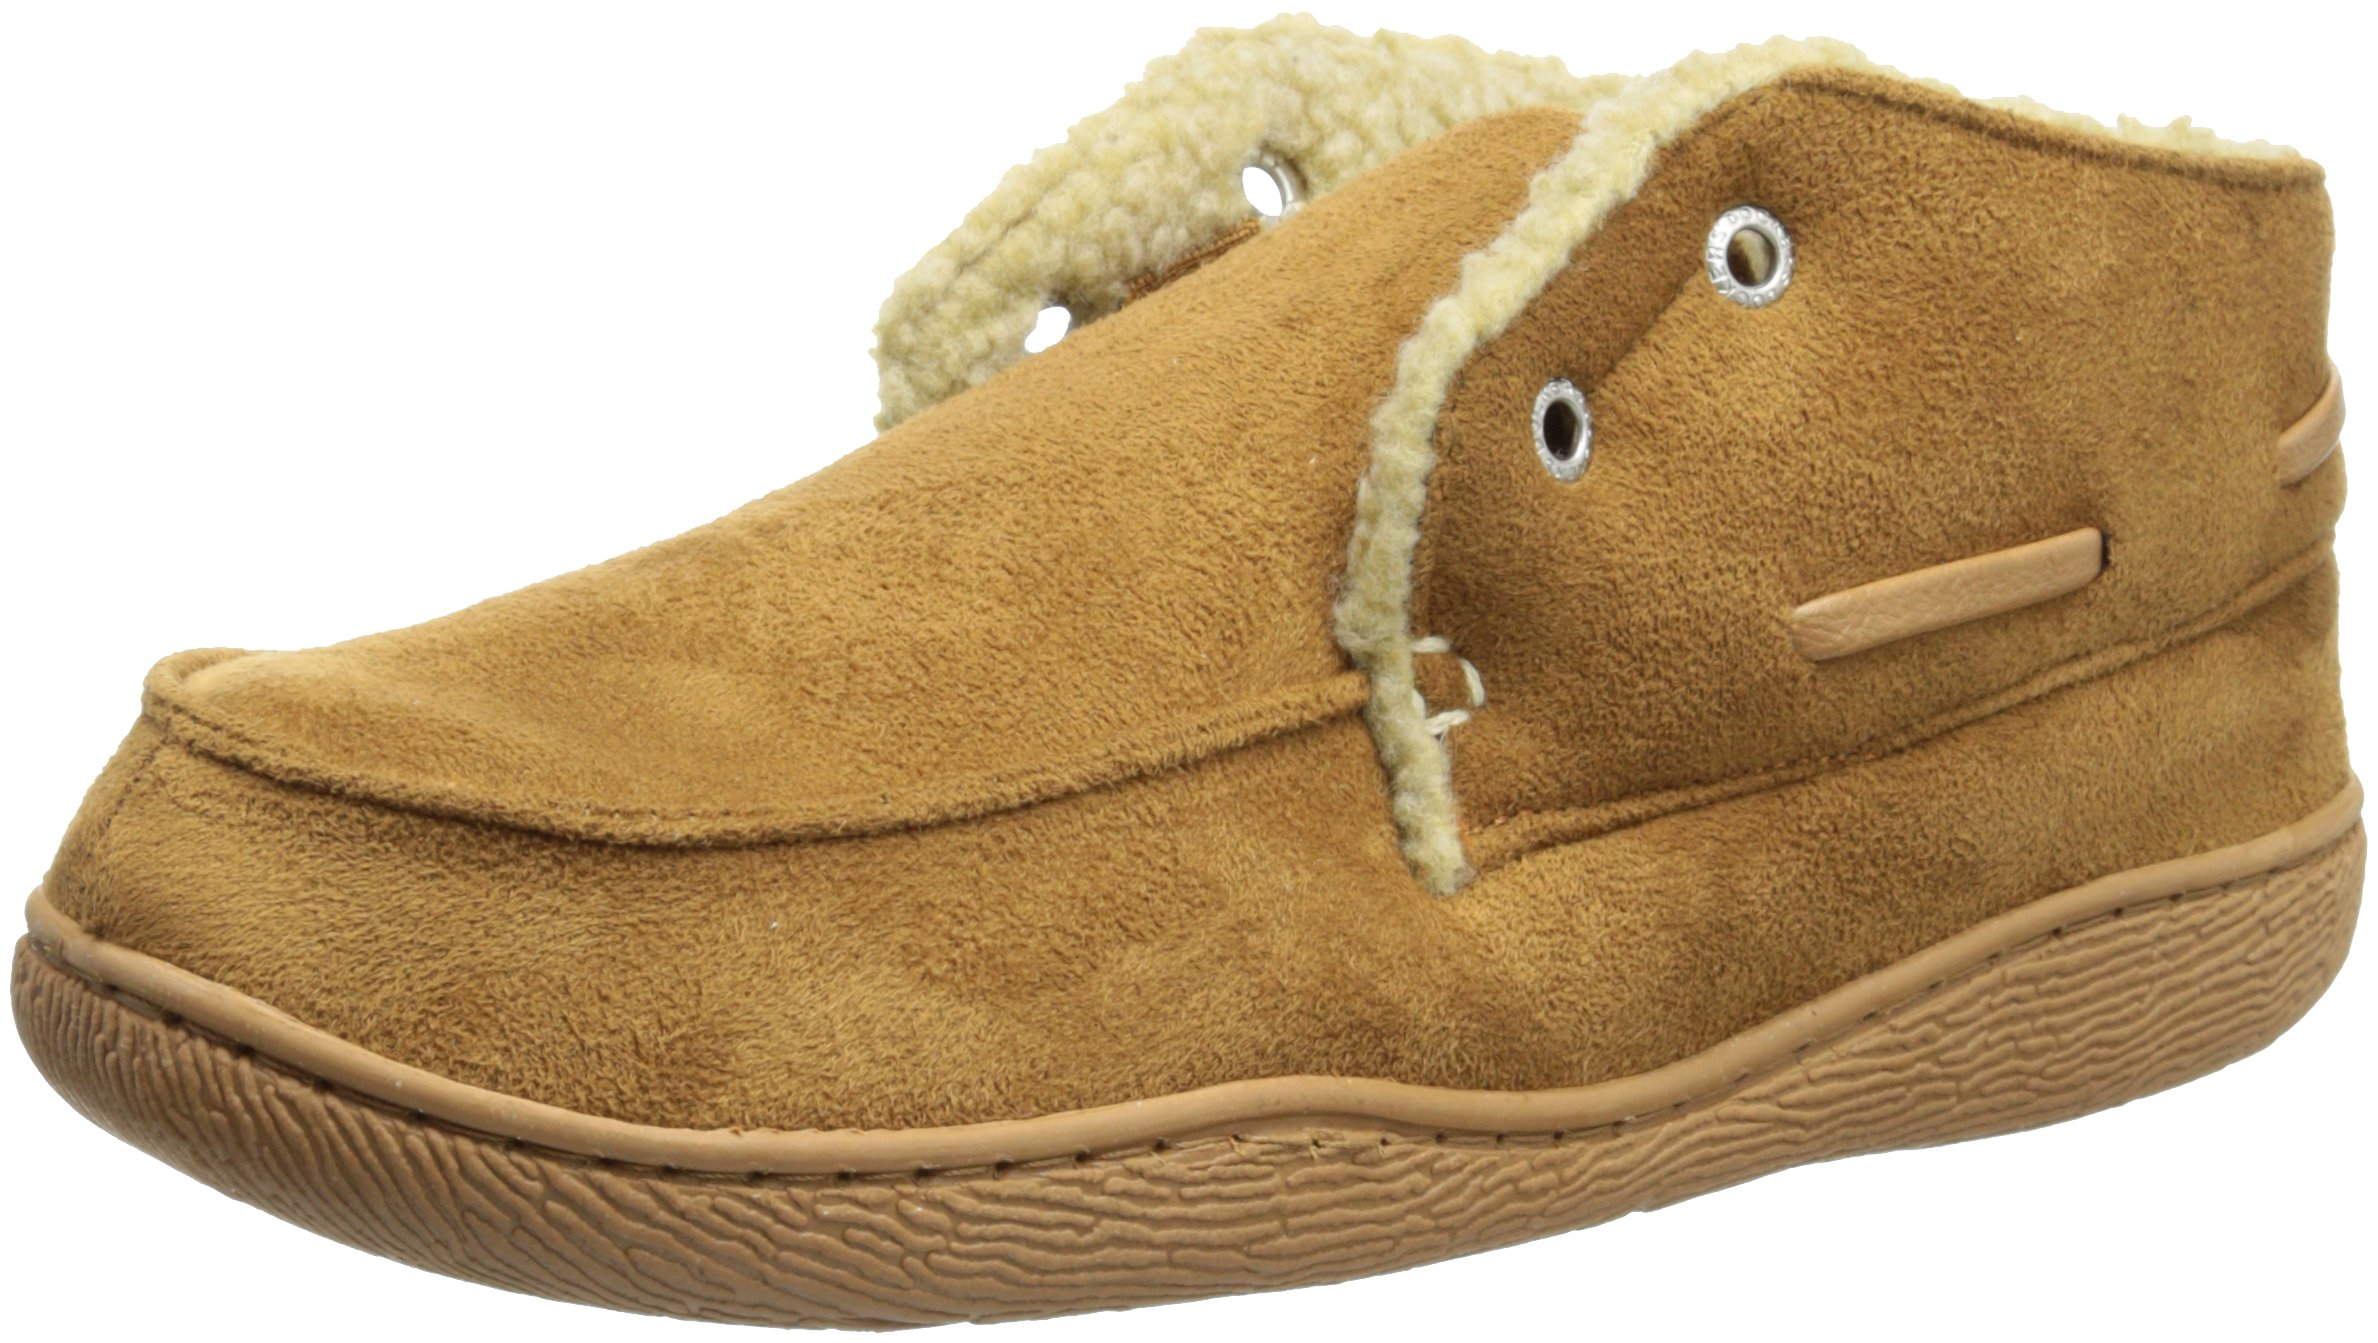 Dockers Men's Slipper Boot with Warm, Synthetic Sherpa Lining, Tan, 9.5-10.5 L